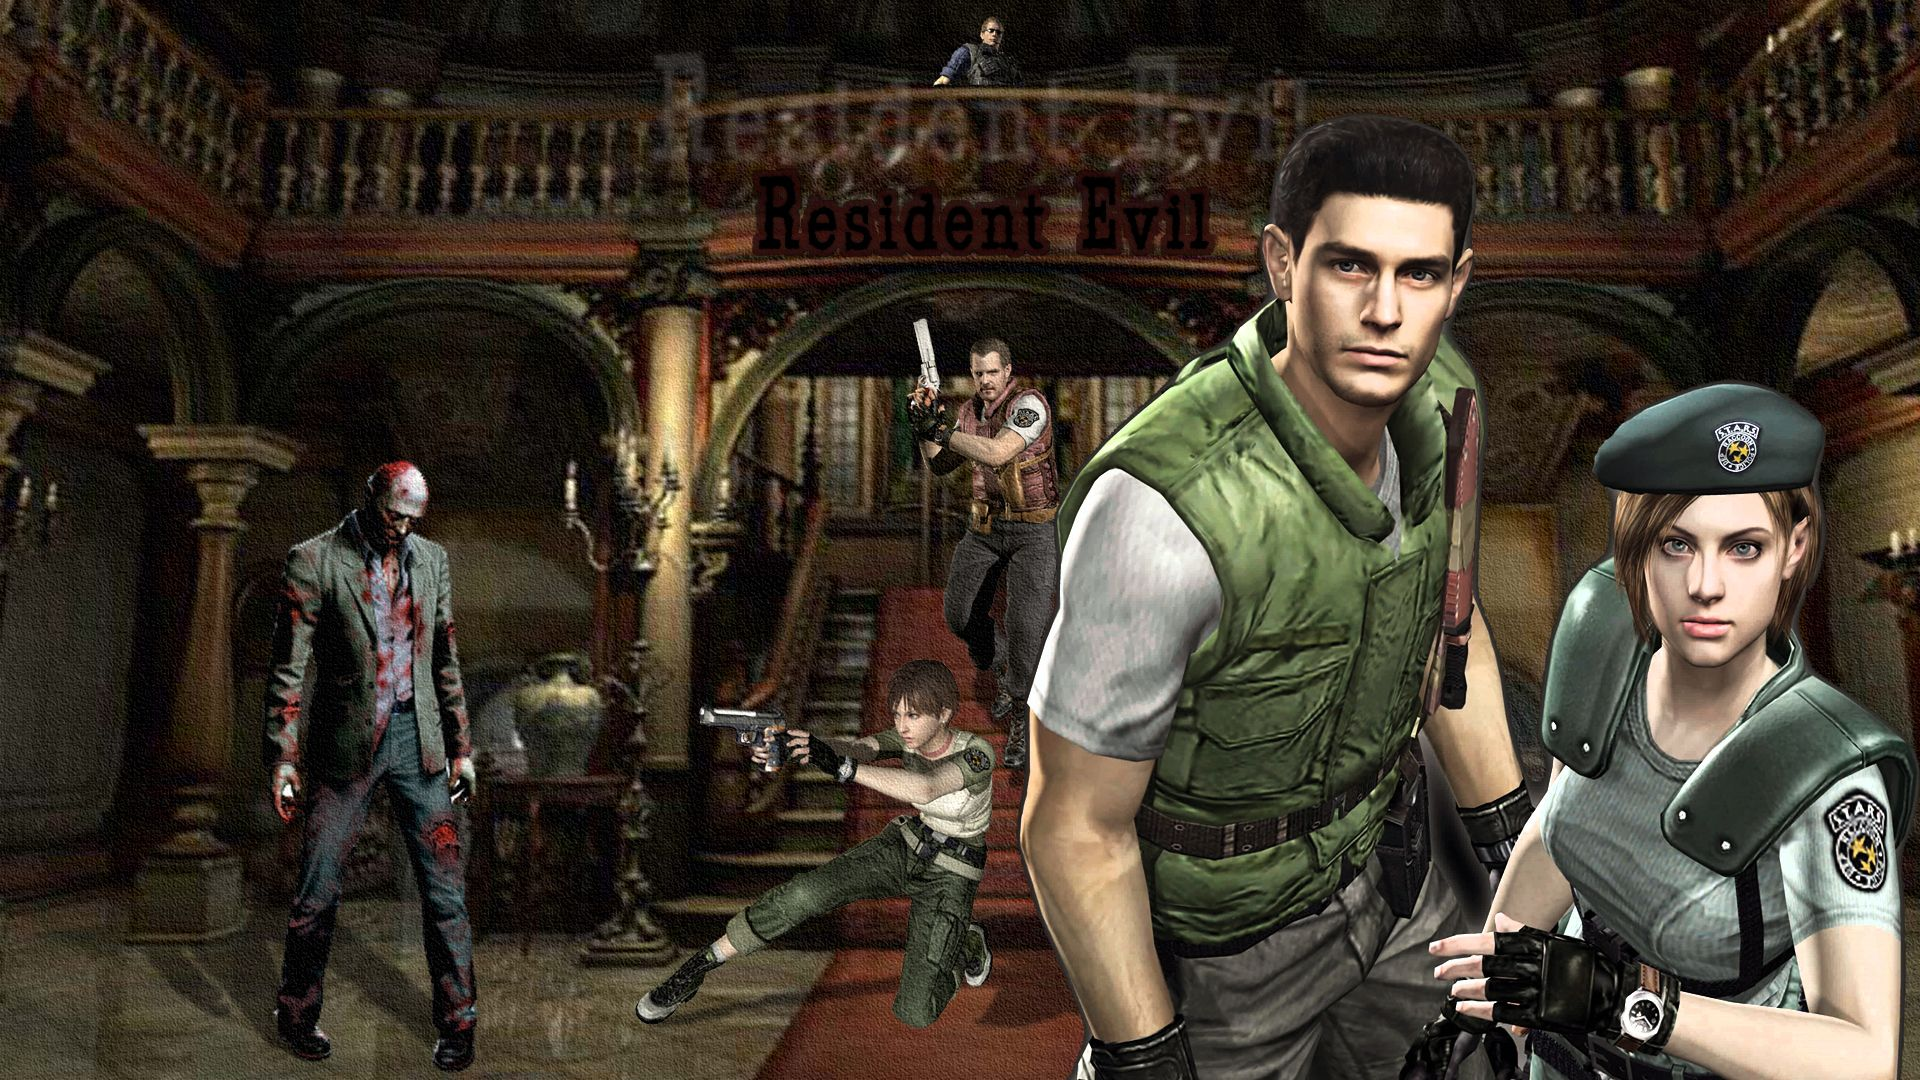 Resident Evil 1 Wallpapers - Top Free Resident Evil 1 Backgrounds - WallpaperAccess